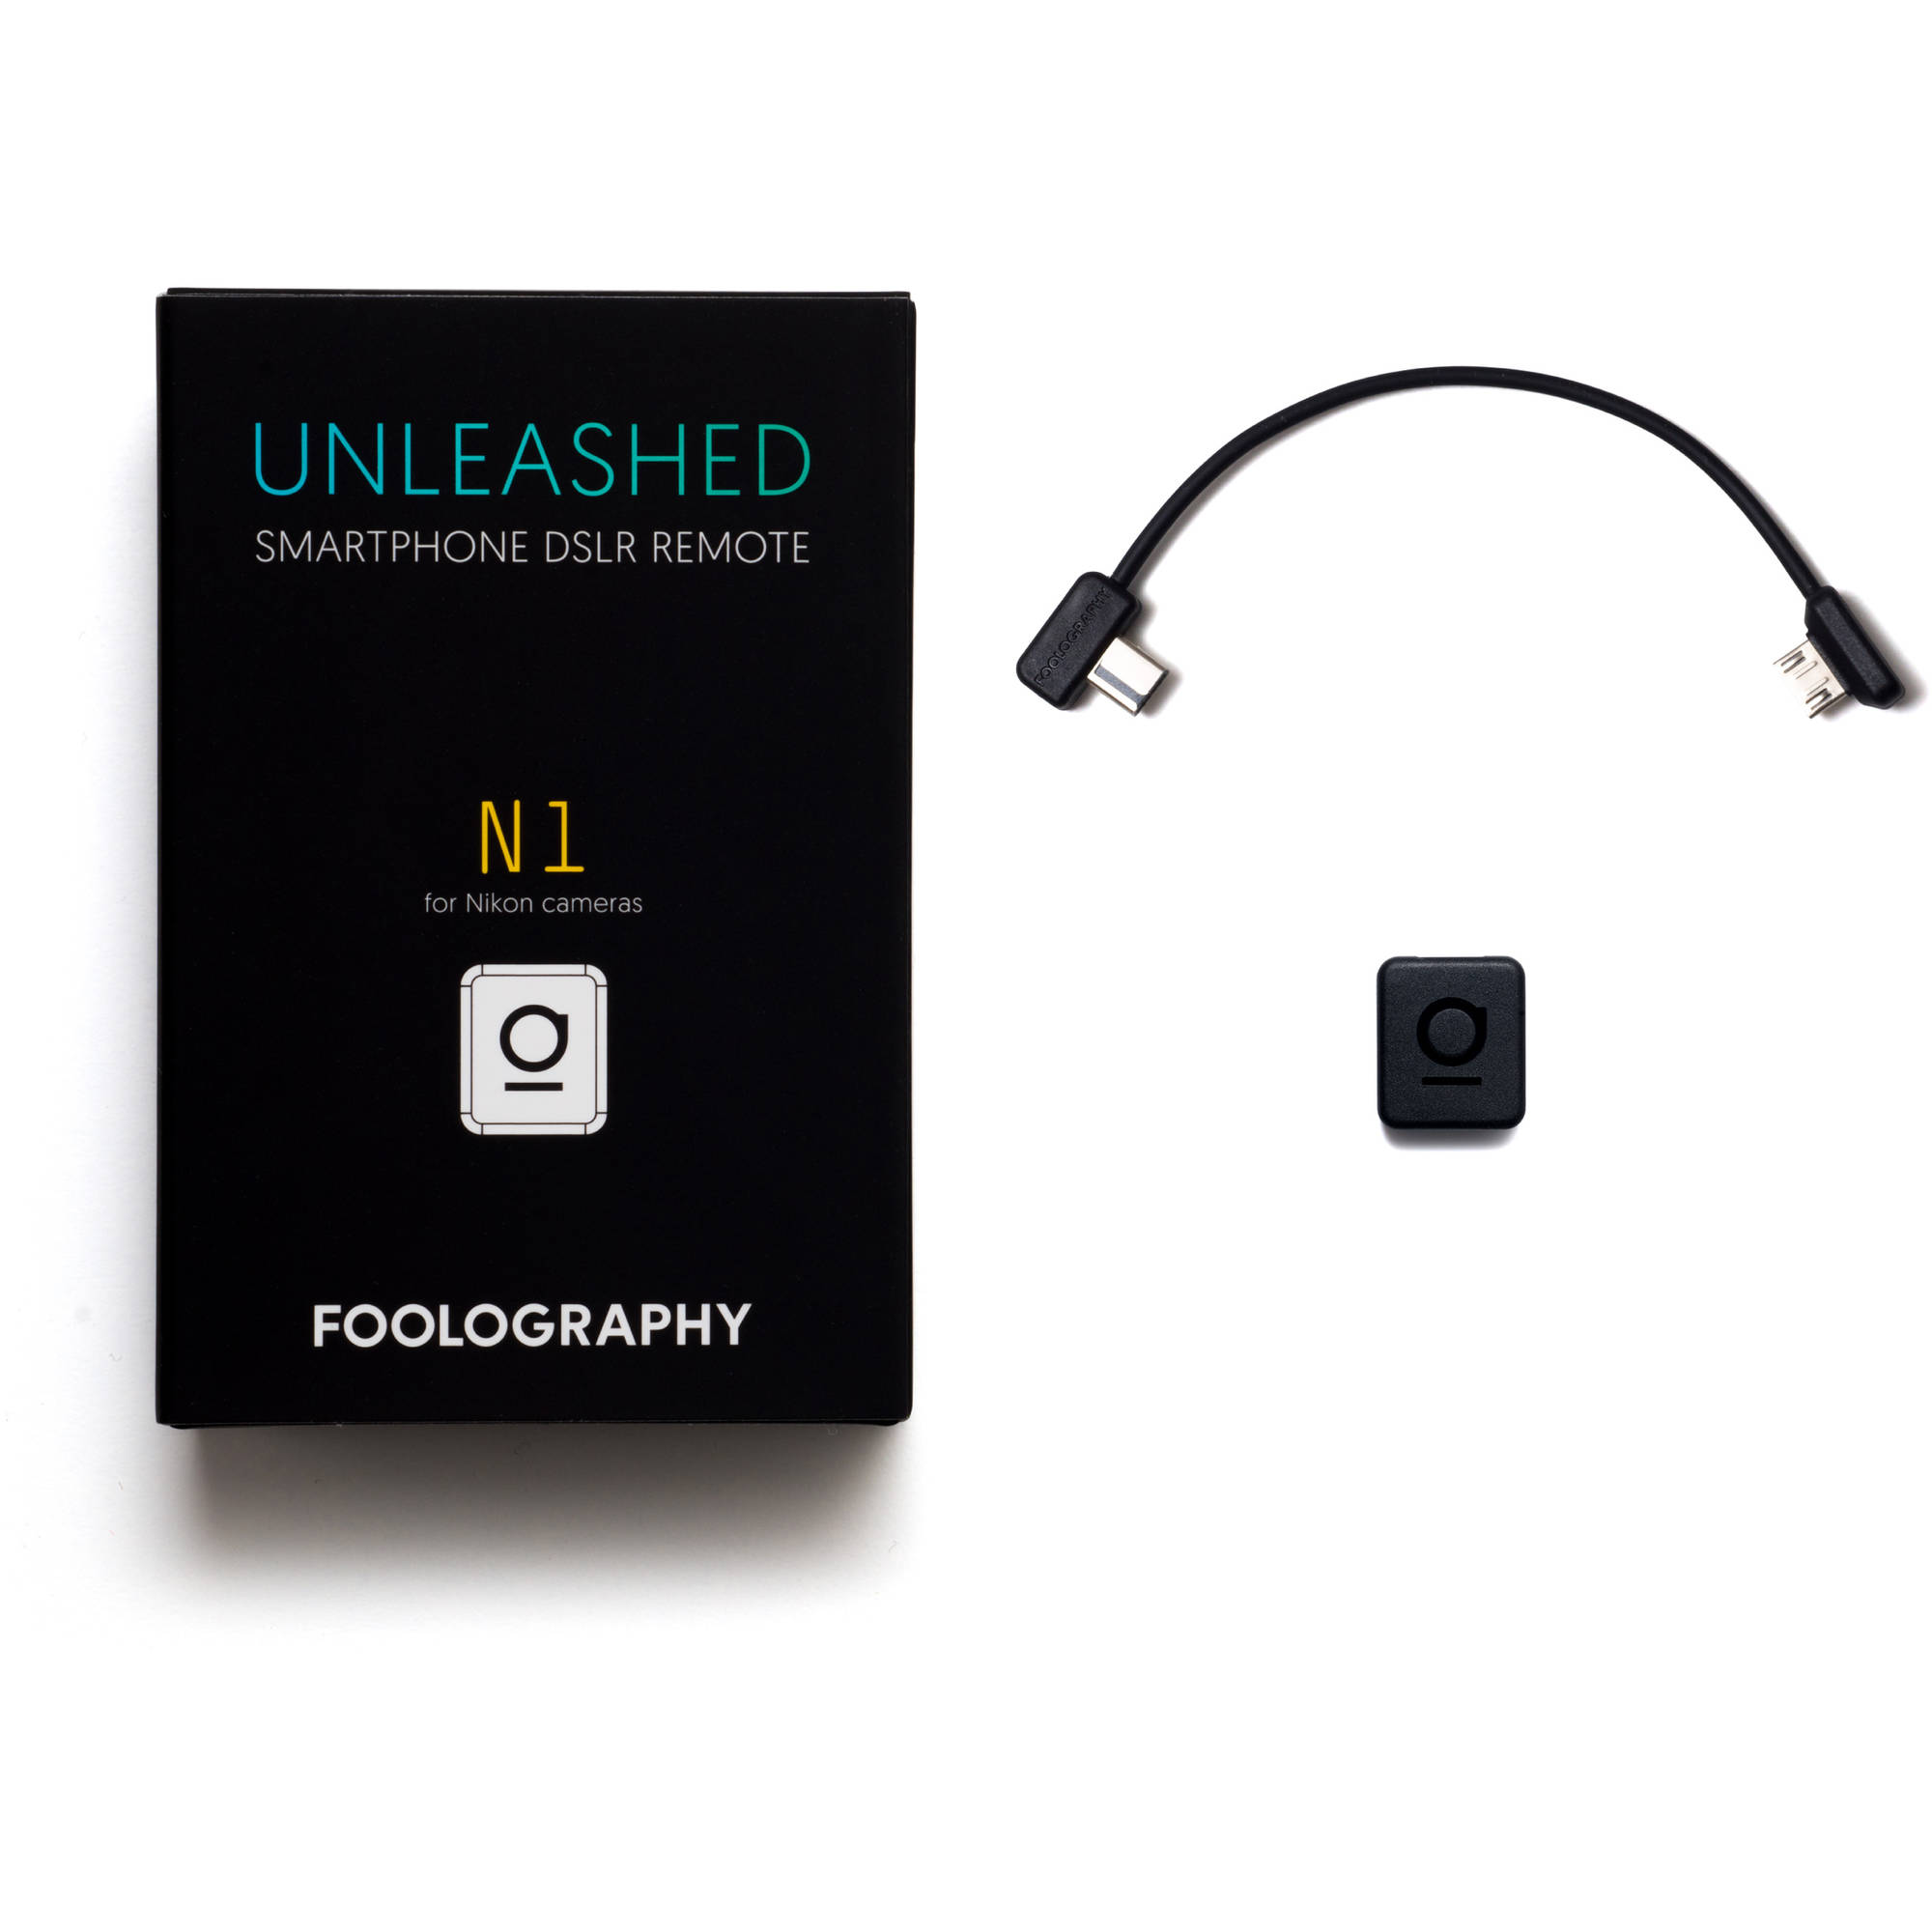 Model N1 for Nikon Pro Cameras with Mini-USB UNLEASHED Bluetooth Remote Shutter Release for Nikon Complete Control via App, Timelapse, Long Exposure, Geotagging, Video